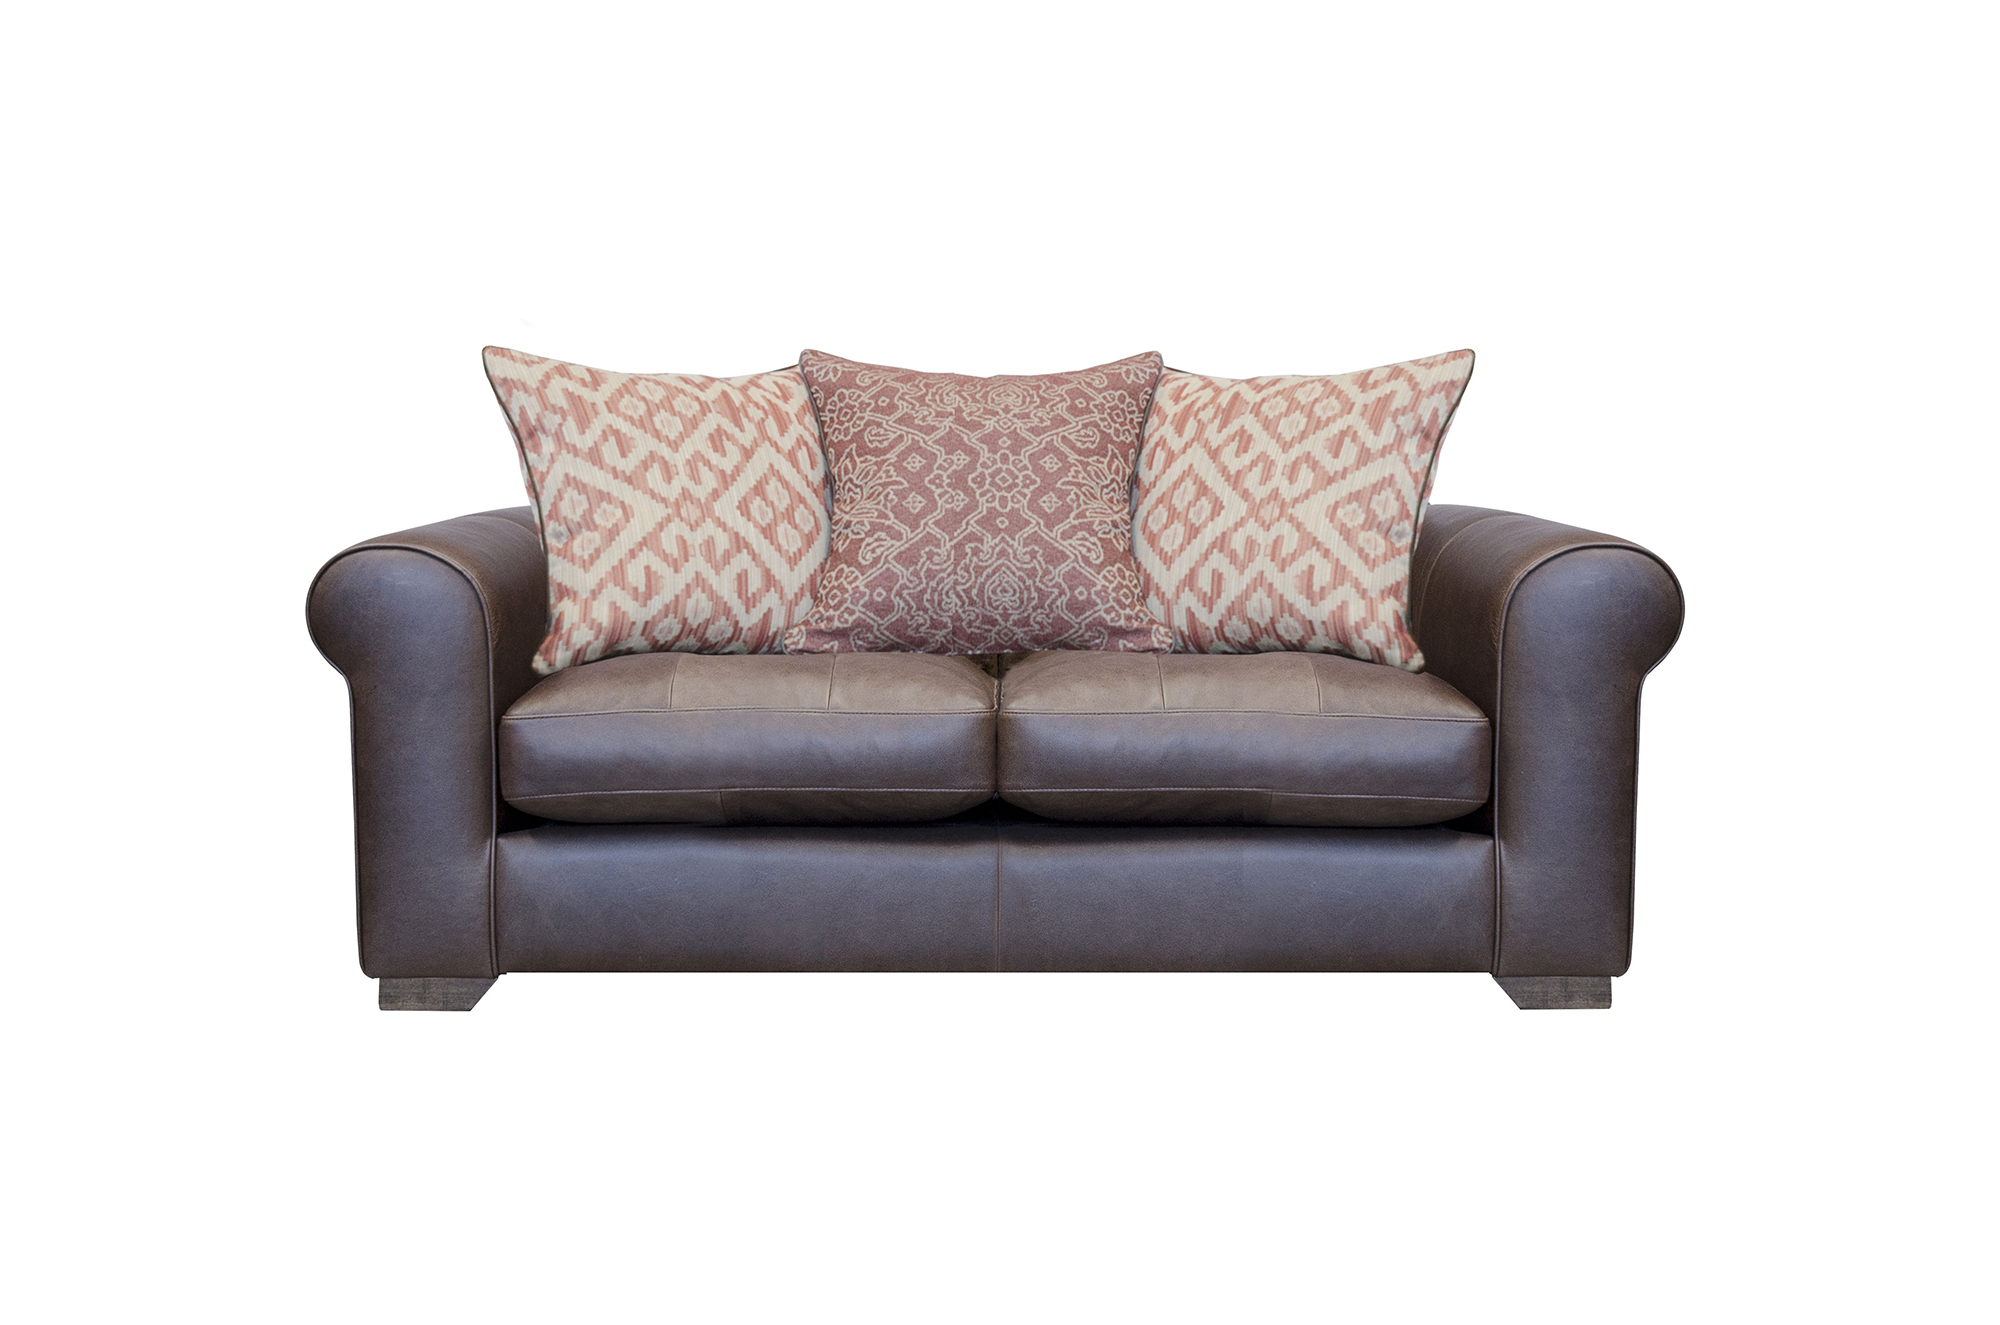 Pemberley Small Sofa Shown in Indiana Tan with Fabric Option 1